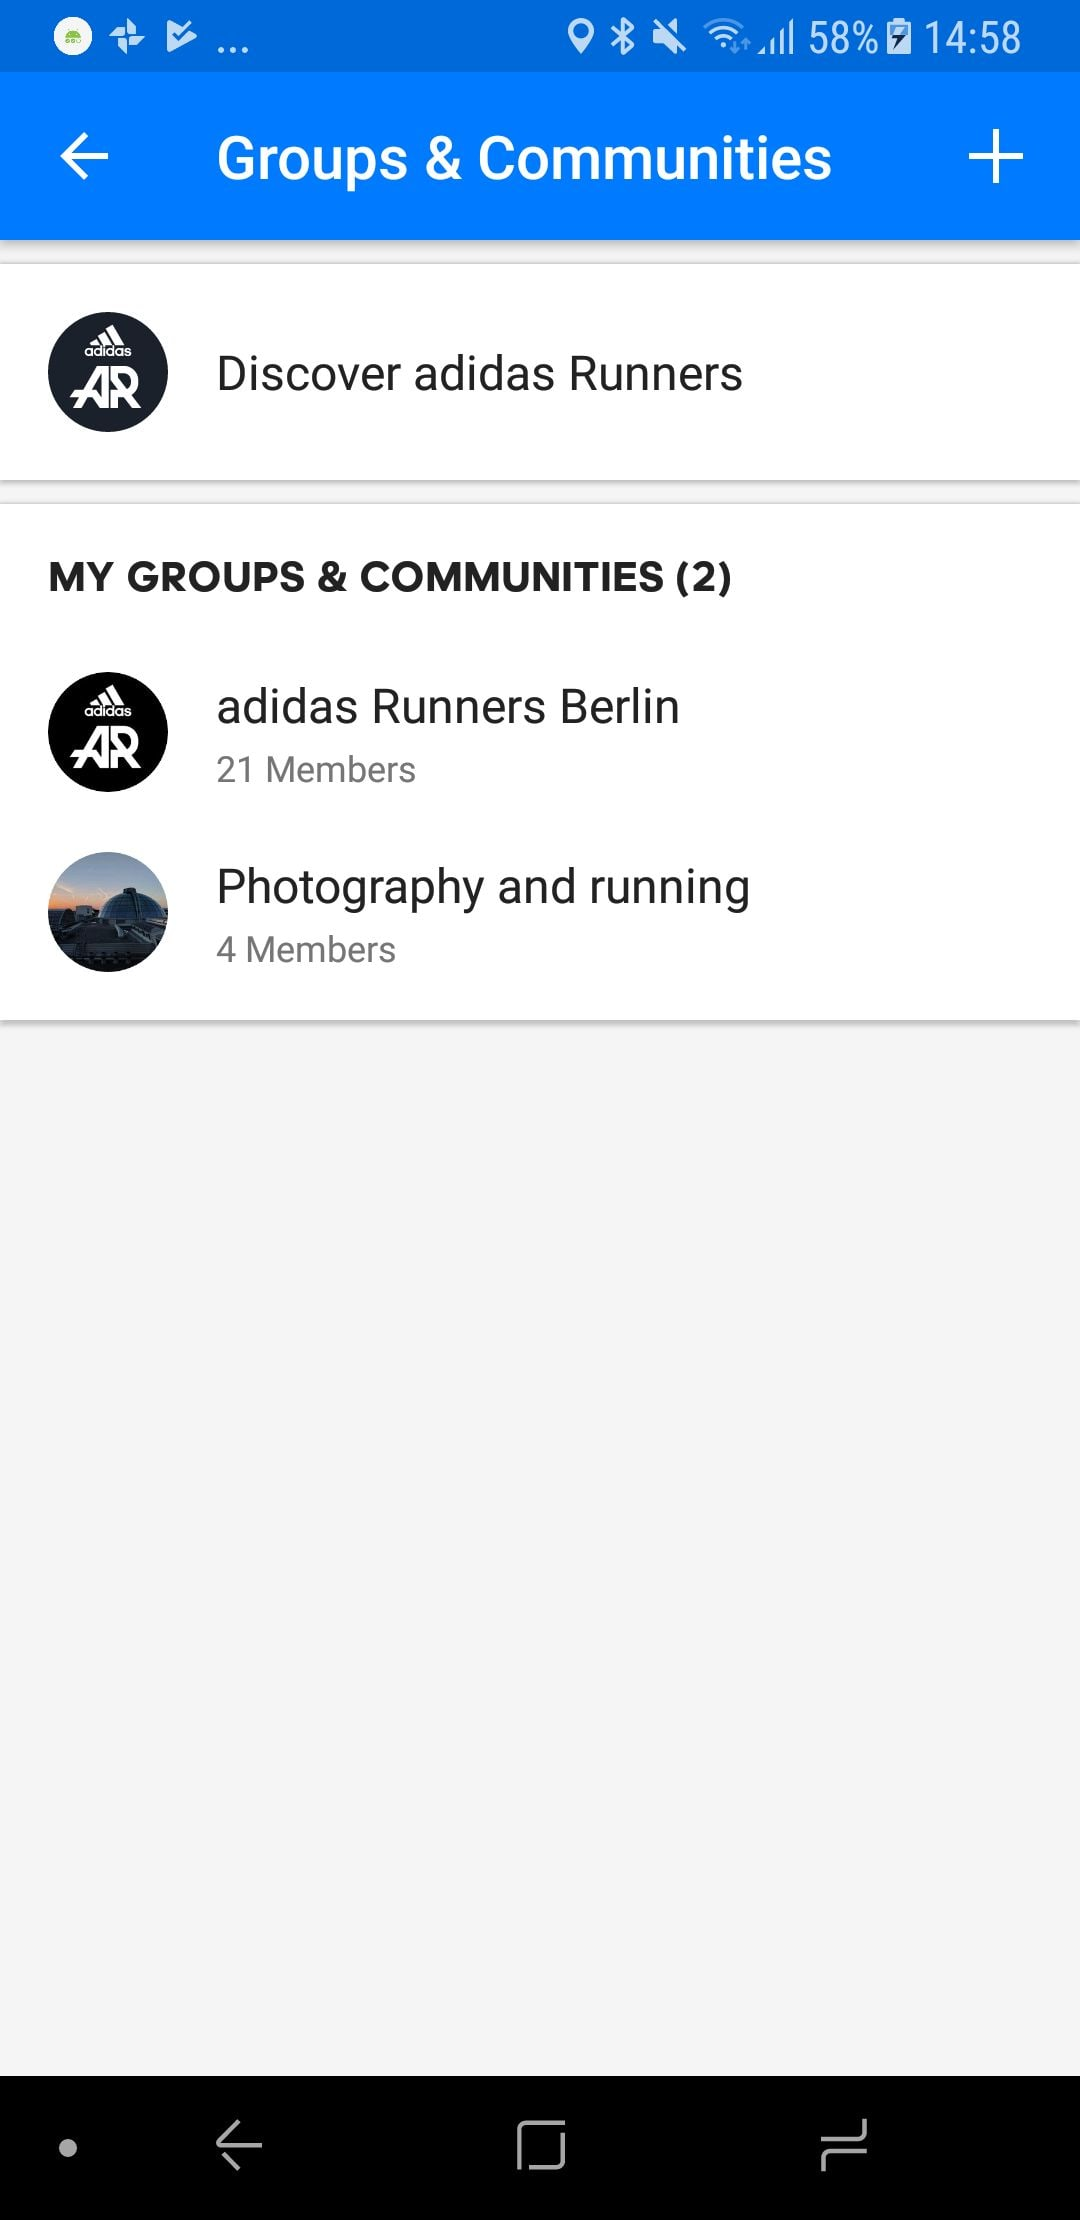 adidas Runners in Runtastic App groups